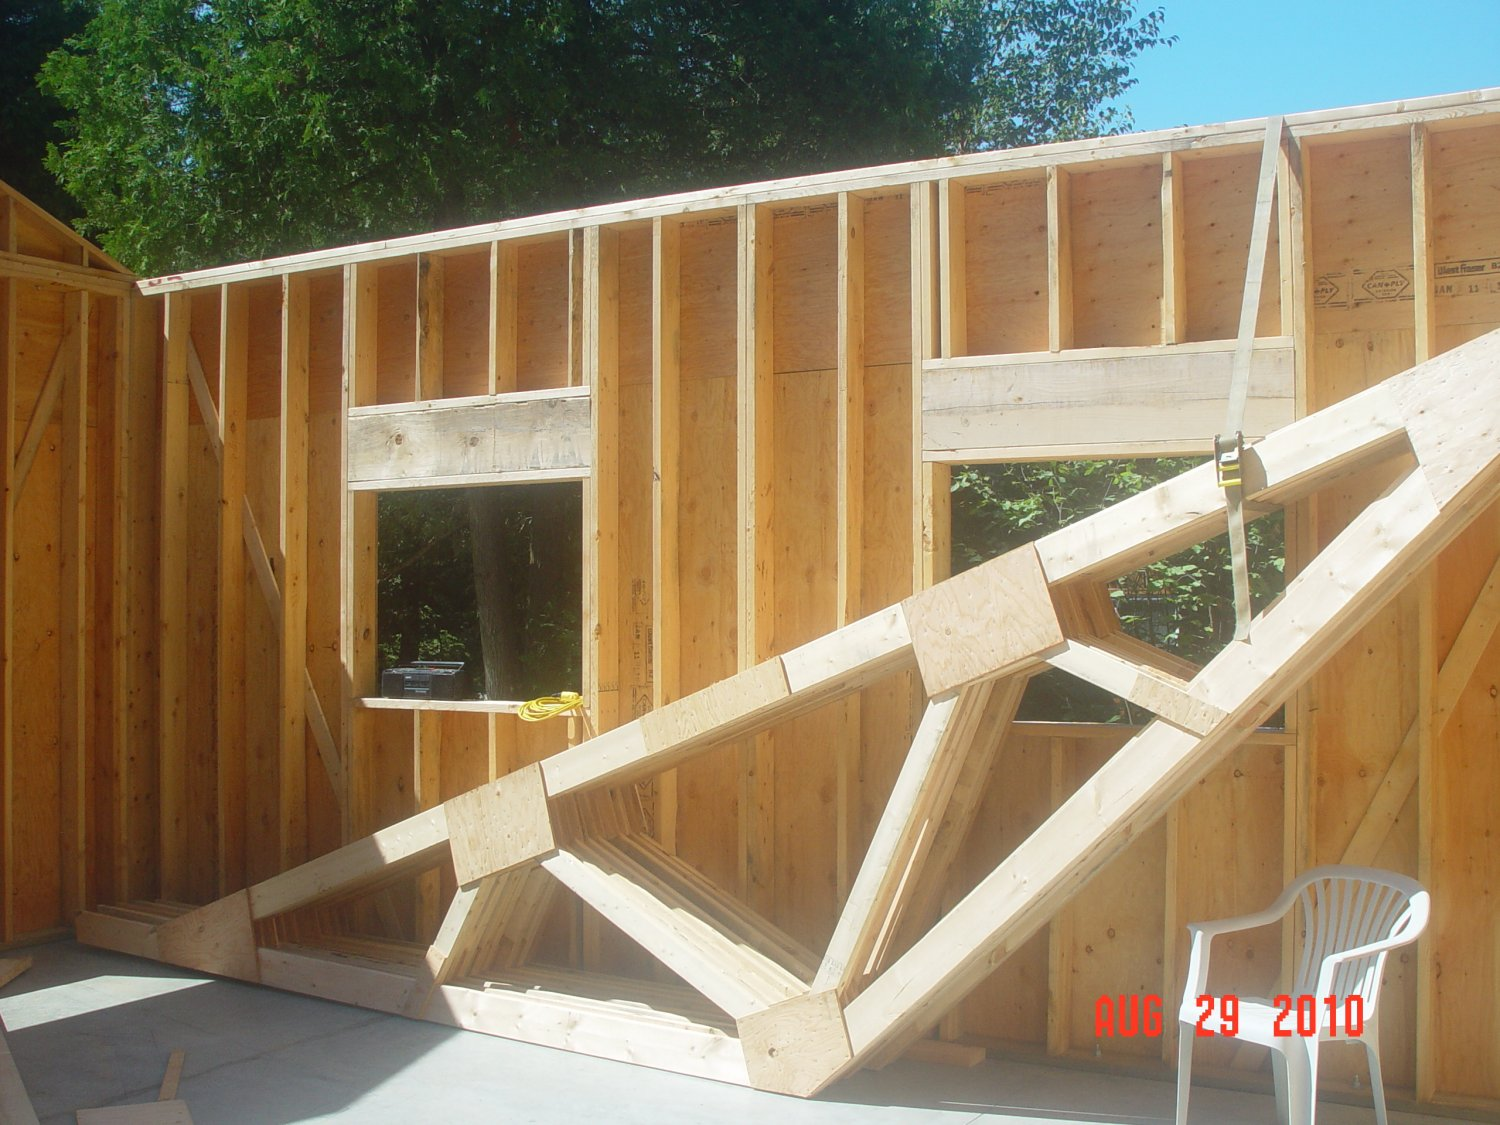 Plans To Show You How To Build Exterior Walls For Your Garage Shed